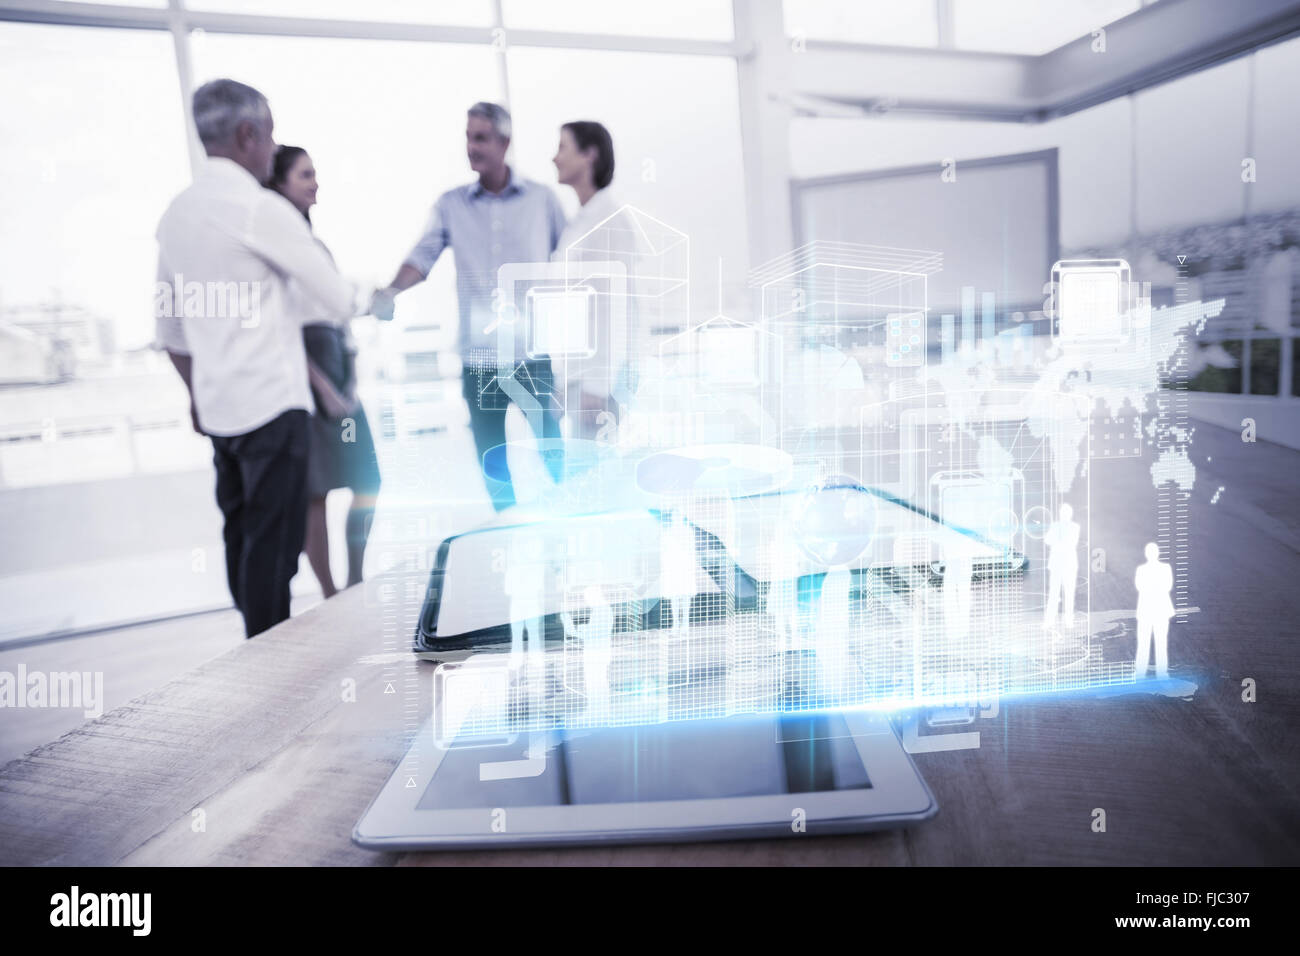 Composite image of digital interface - Stock Image